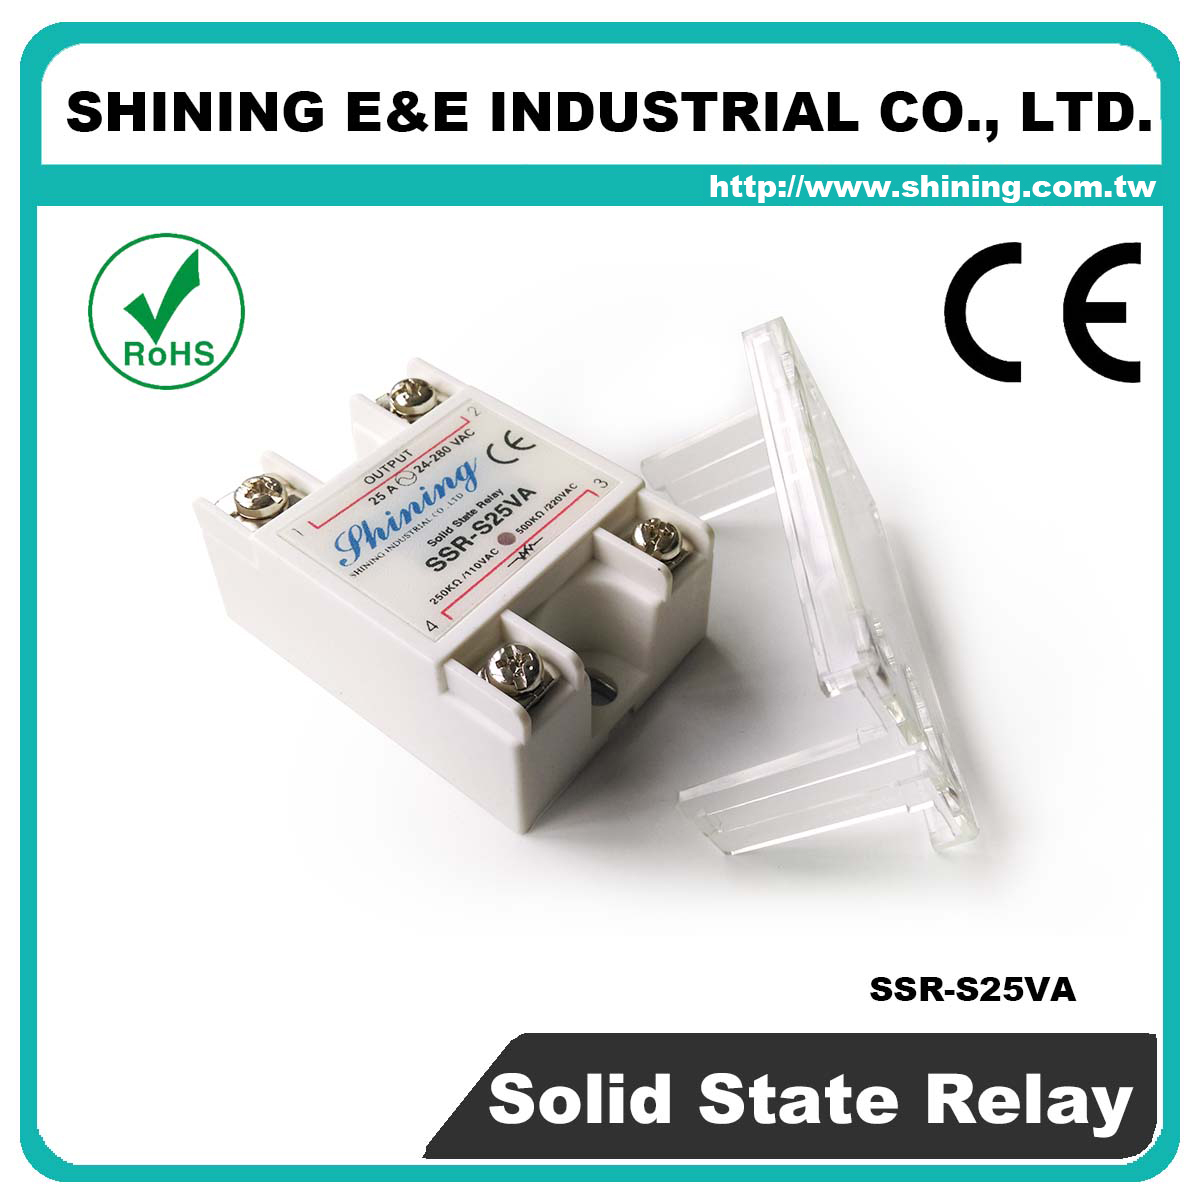 Taiwan Ssr S25va Variable Resistor To Ac Phase Control Solid State Relay Working